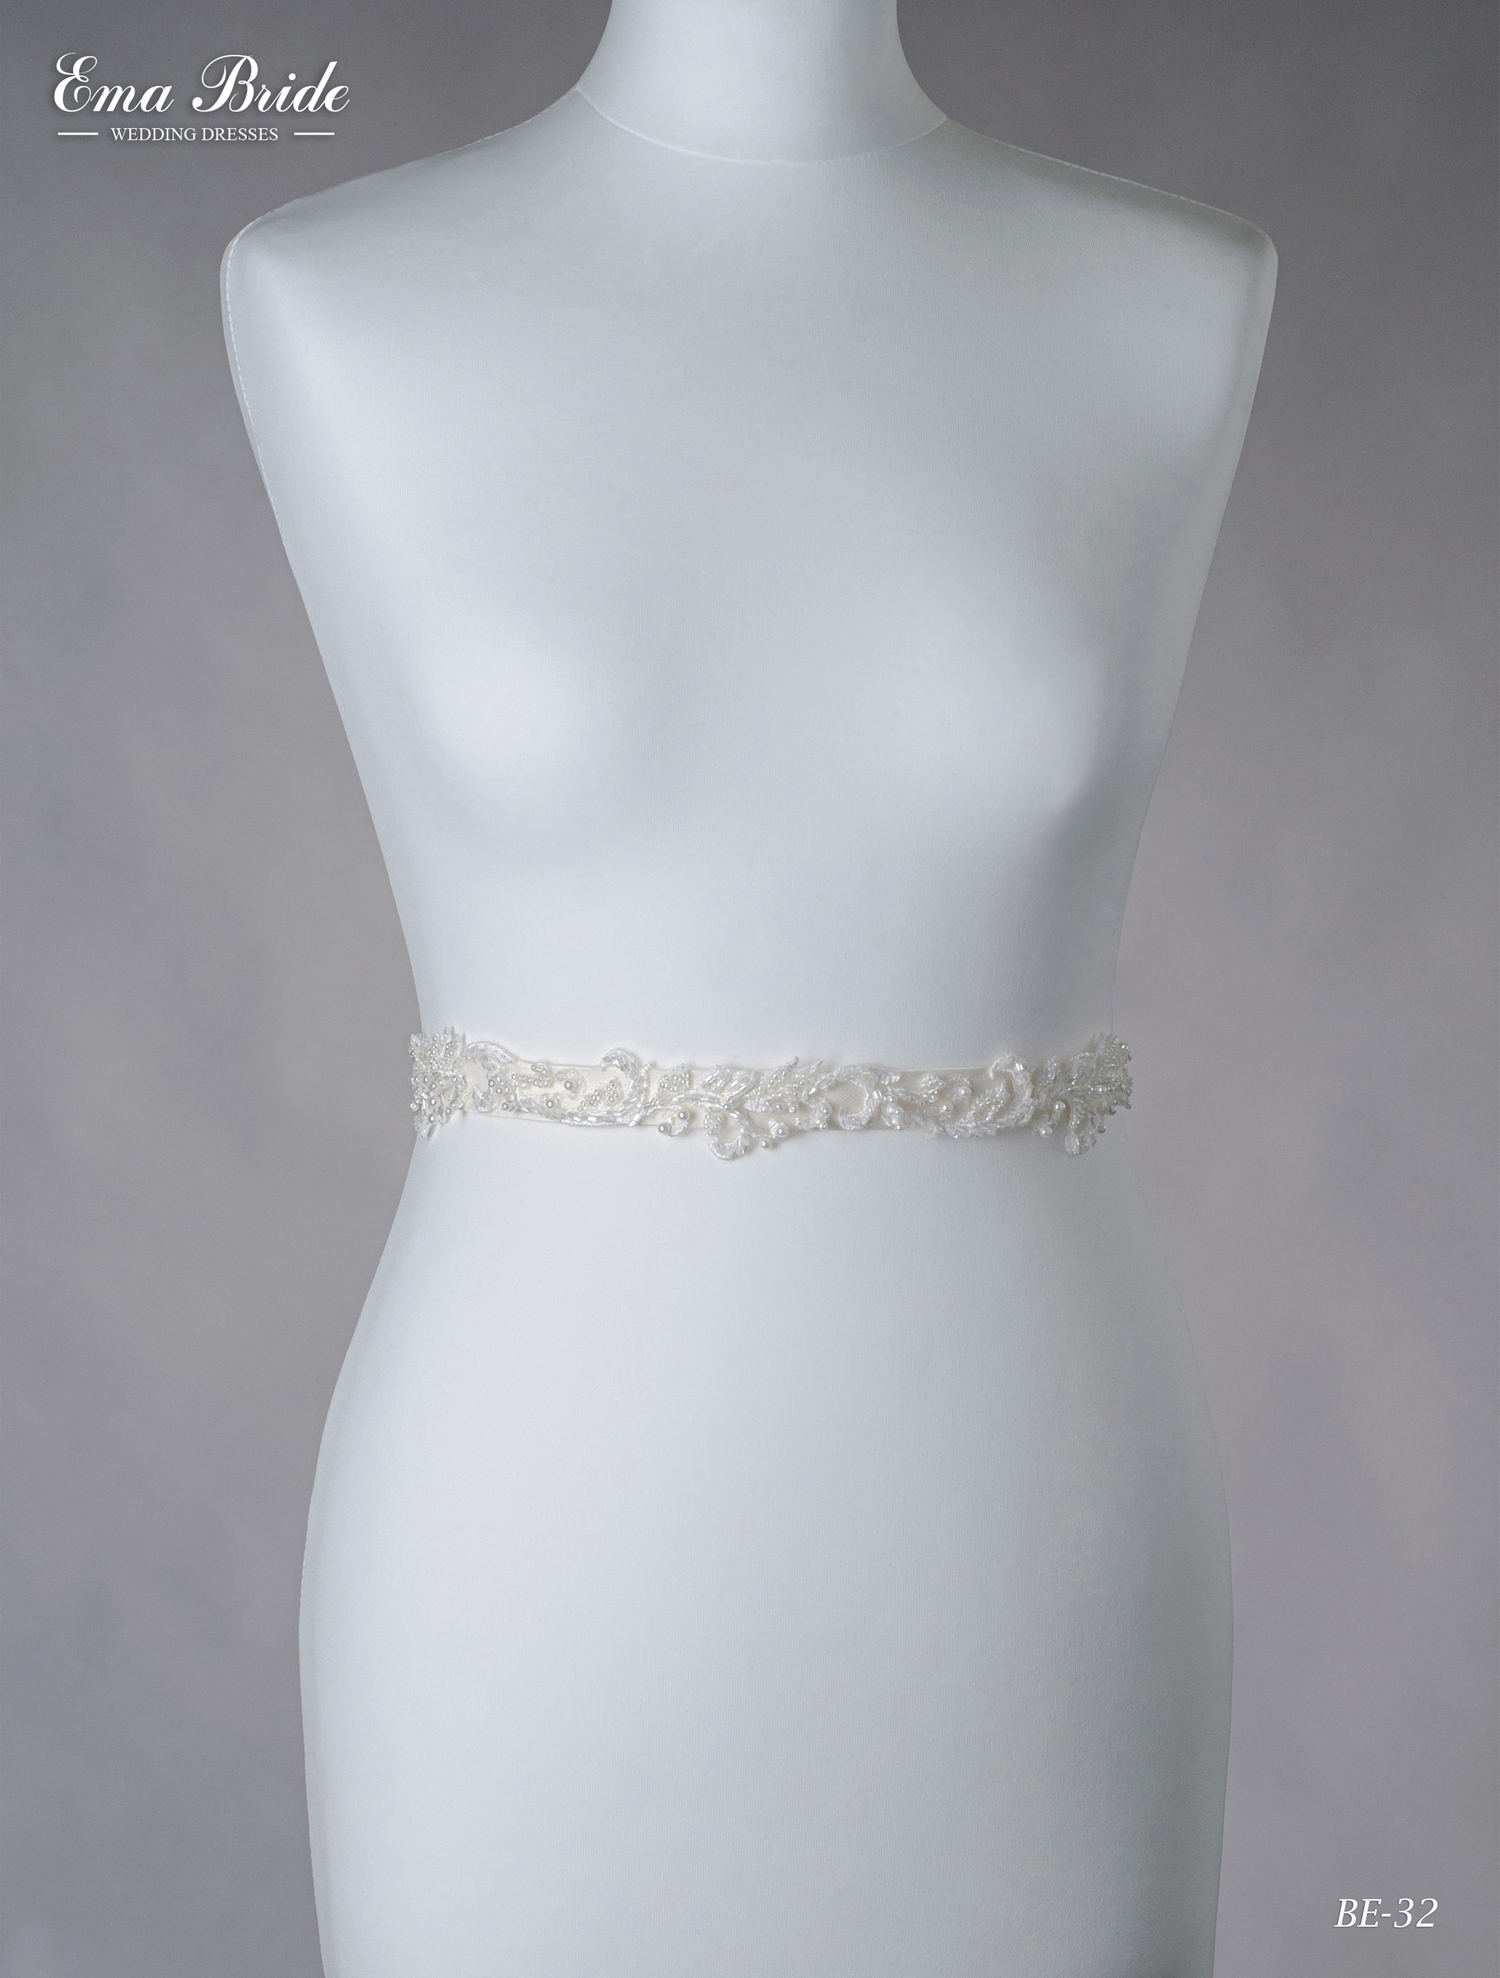 A belt for a wedding dress Be-32